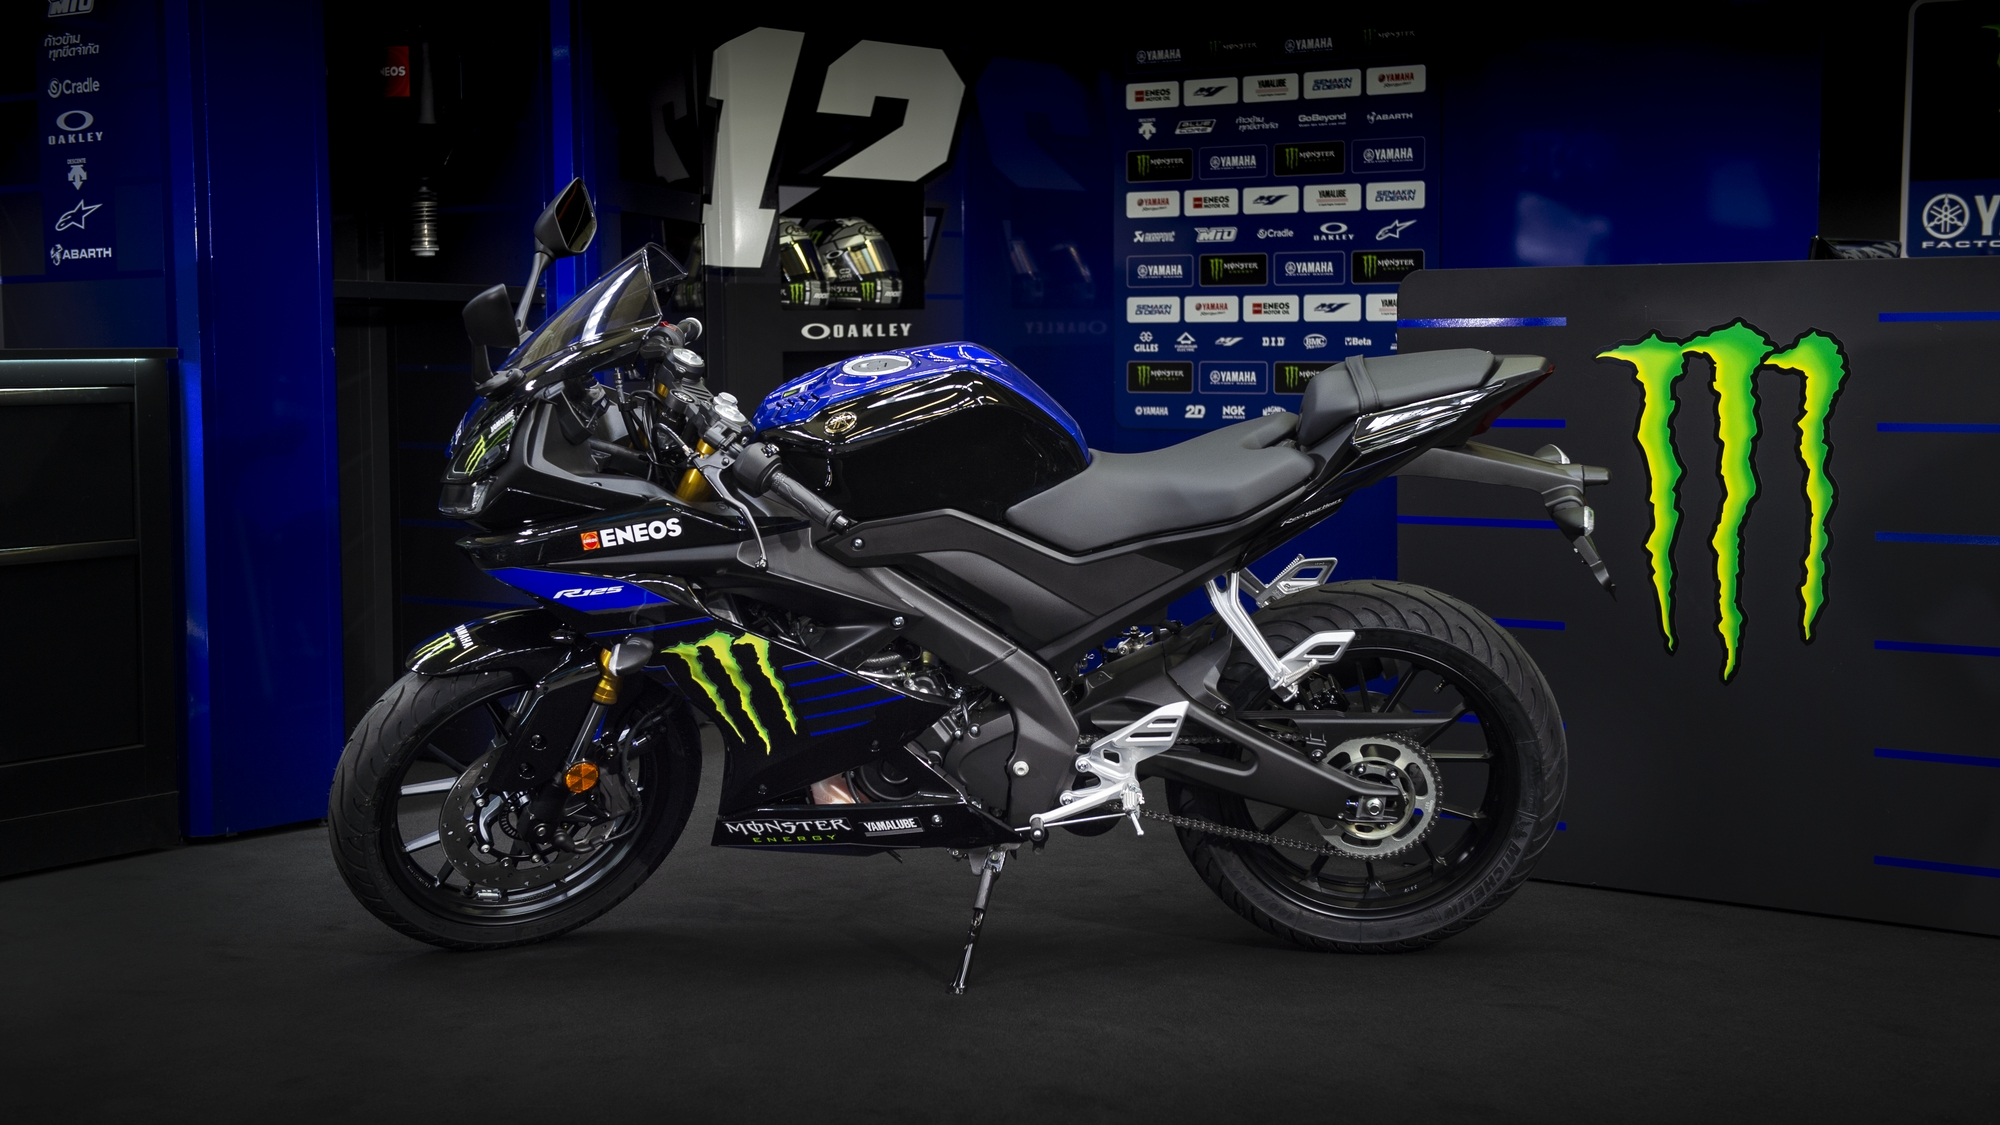 Yzf R125 Monster Energy Yamaha Motogp Edition Motorcycles